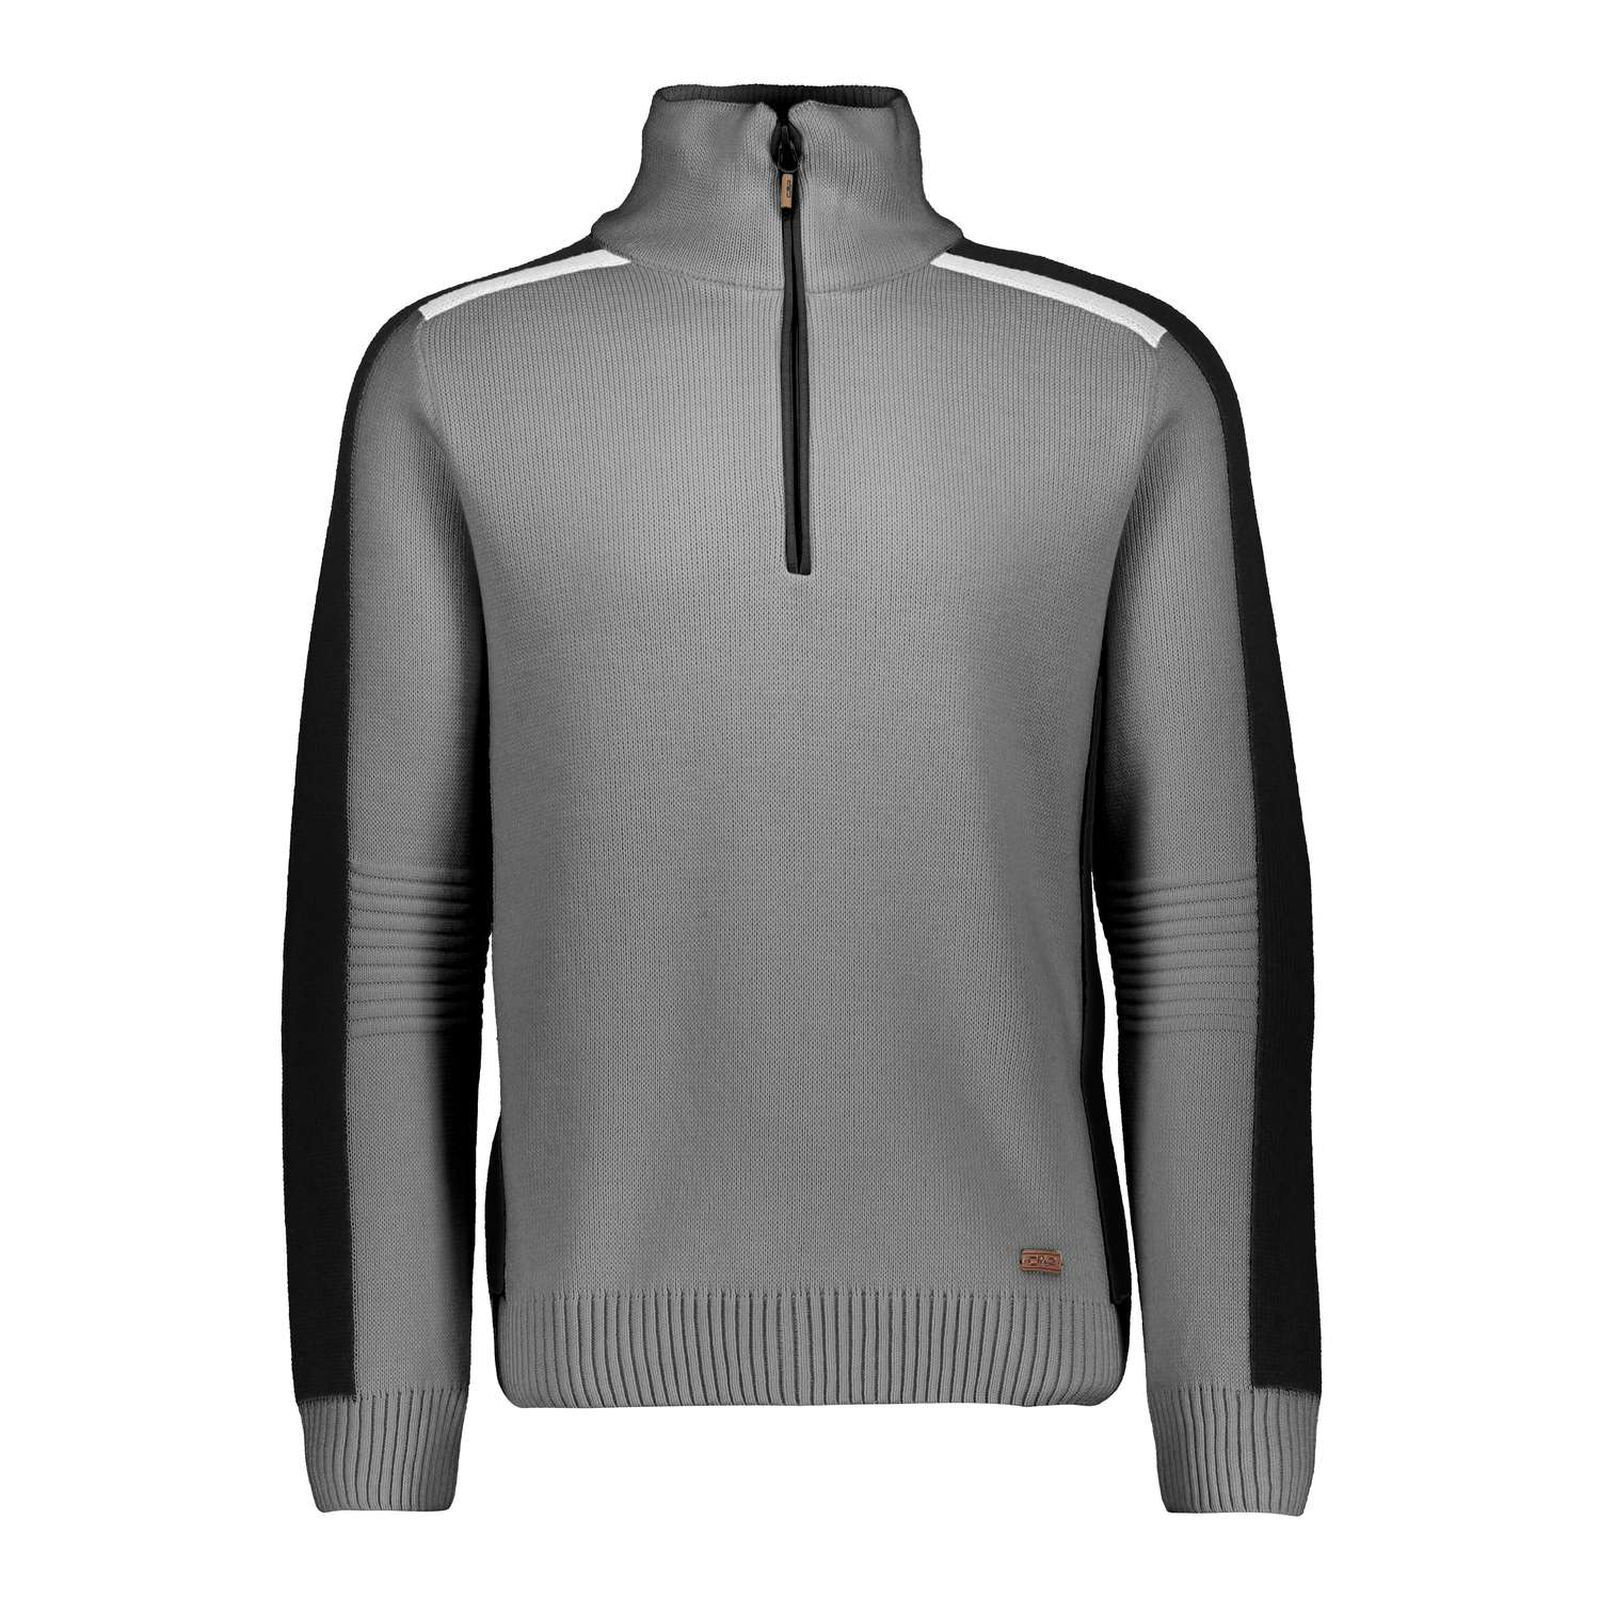 CMP F. LLI CAMPAGNOLO Men's Leisure Ski Knit  Sweater Water Repellent Grey  waiting for you